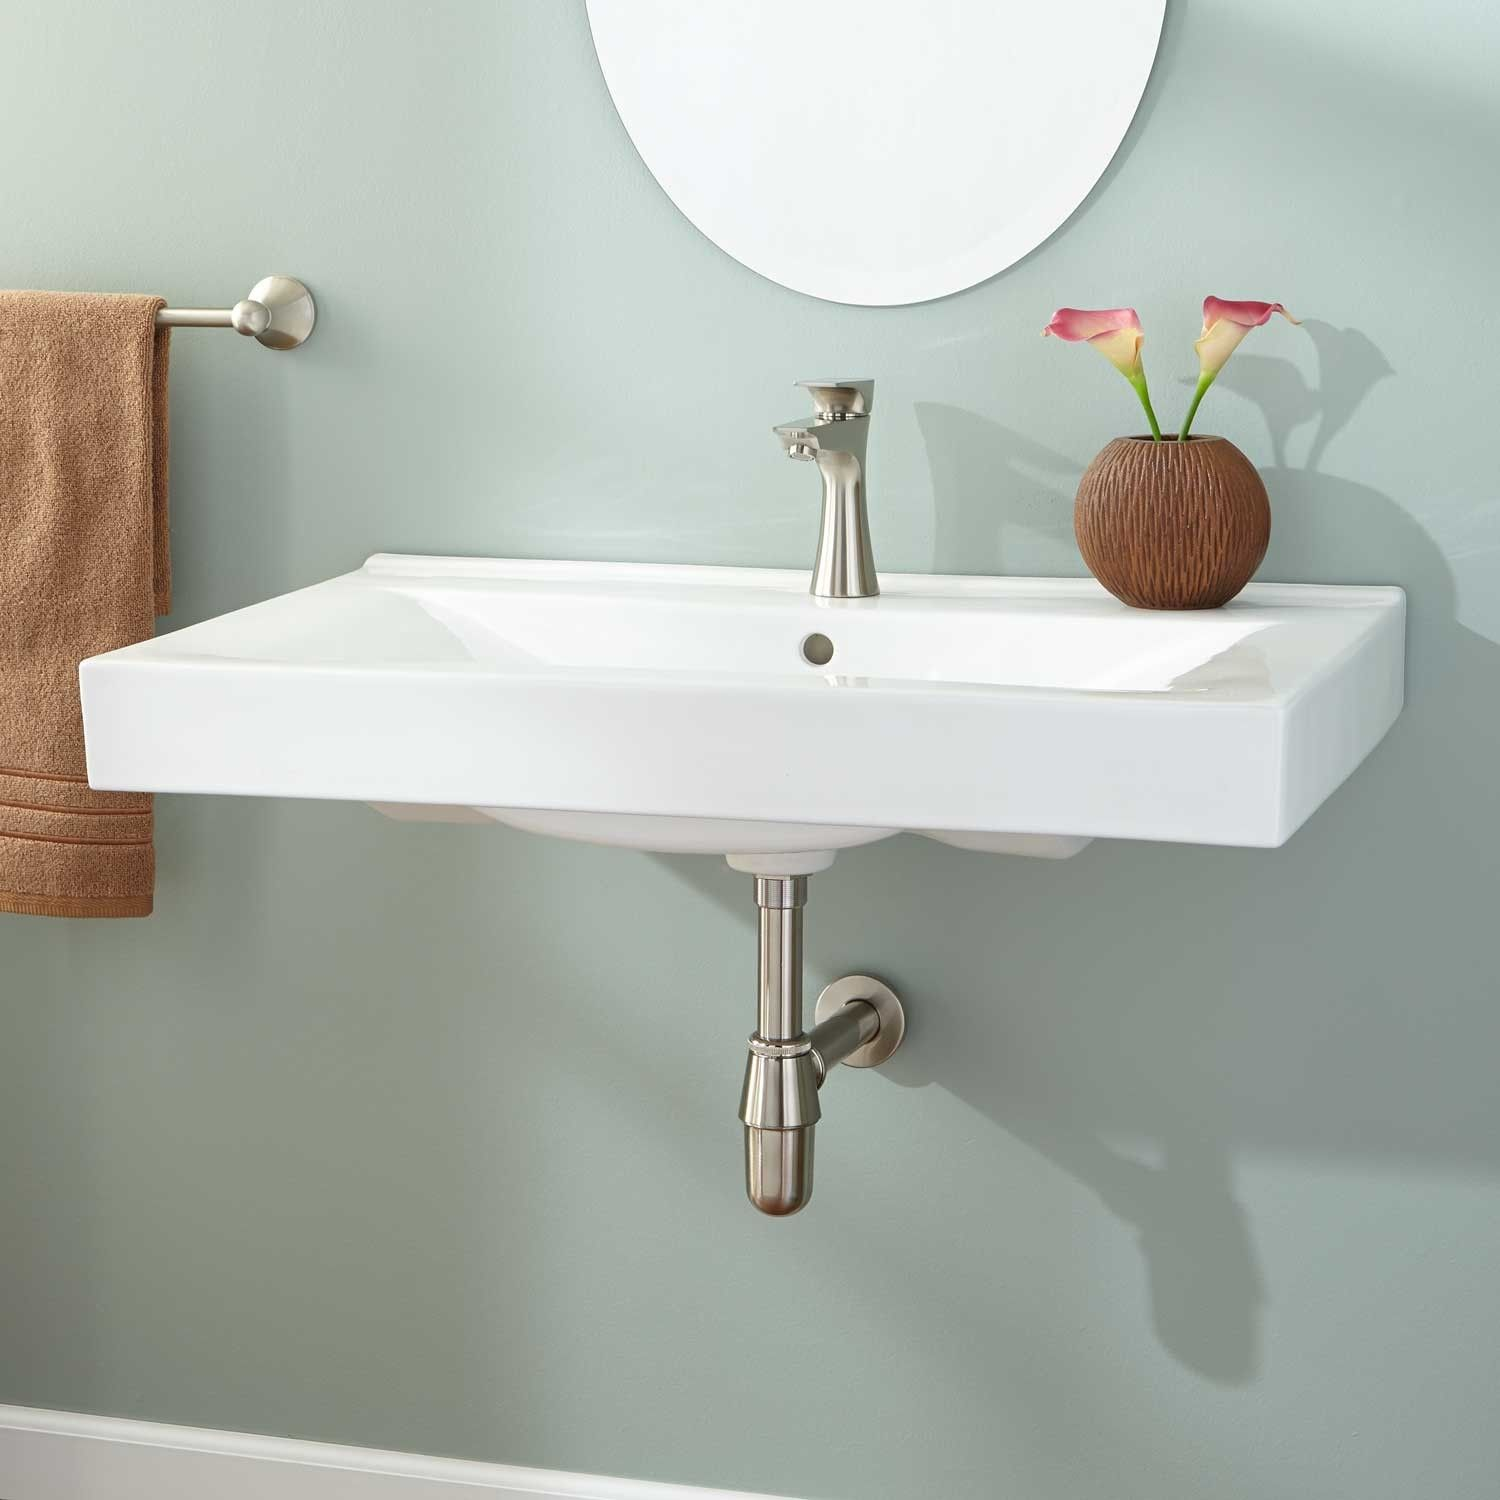 wall mounted sinks for small bathrooms. Bathroom Furniture, Fixtures And Decor Wall Mounted Sinks For Small Bathrooms